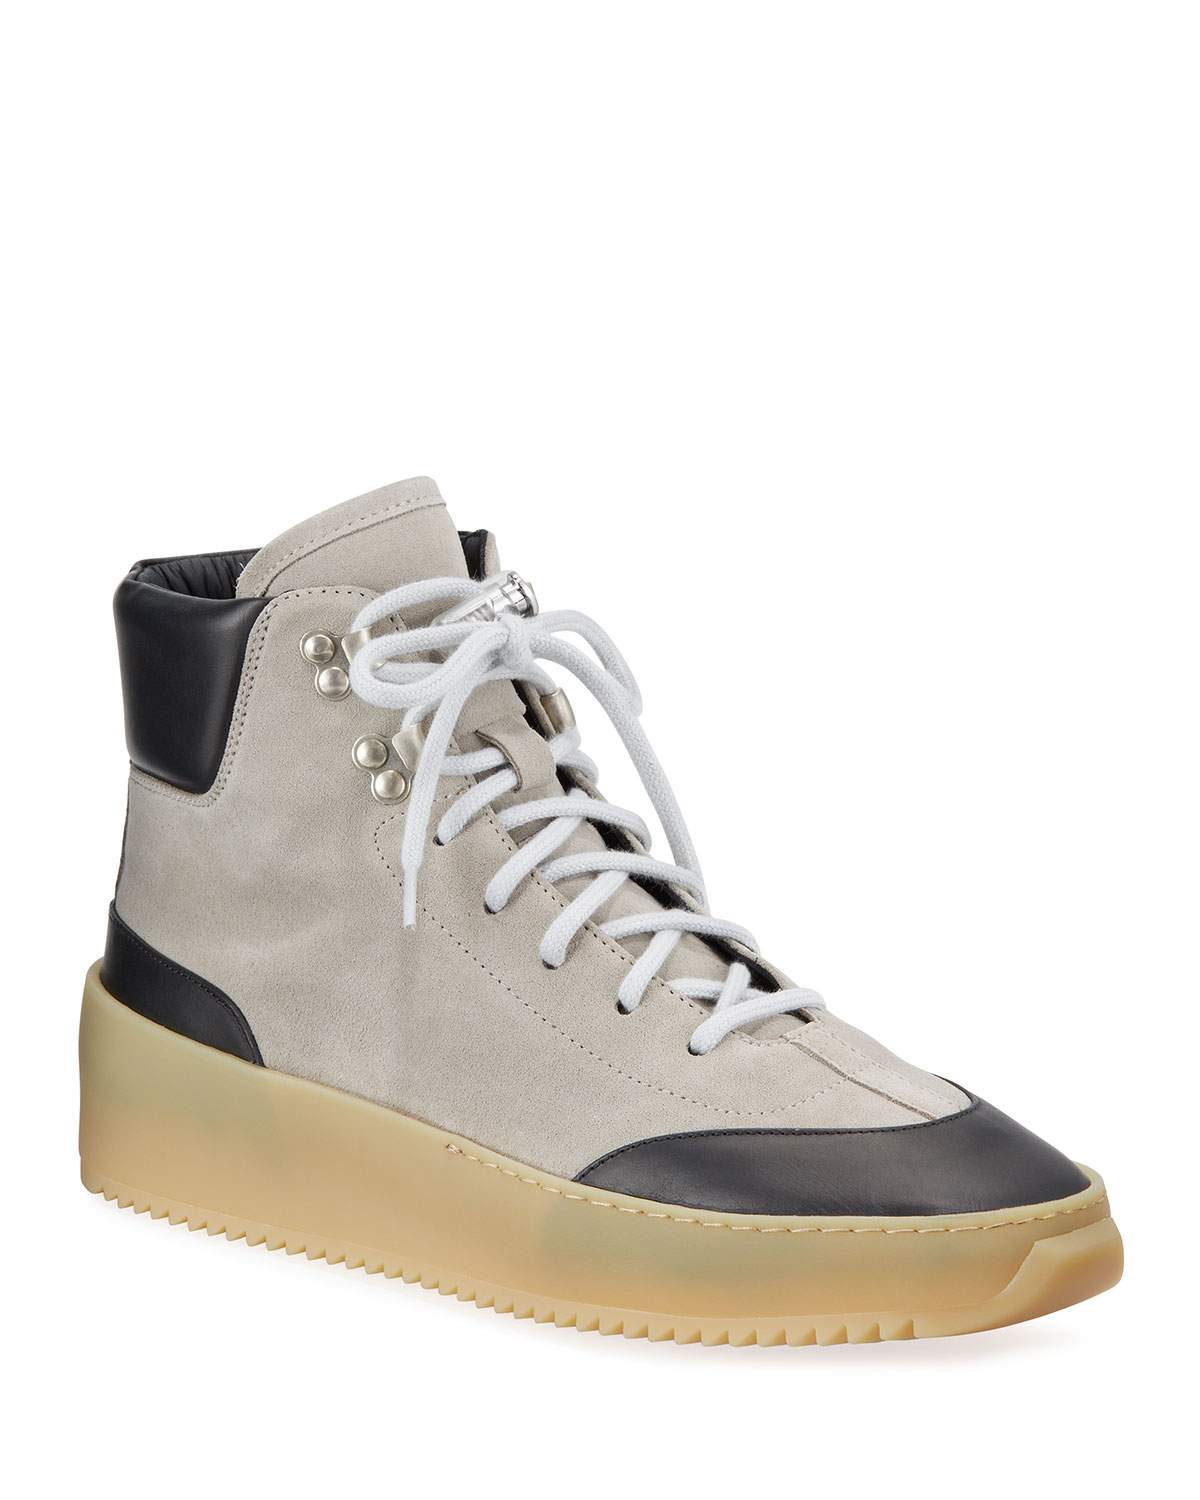 Fear Of God Sneakers MEN'S 6TH COLLECTION SUEDE HIKER SNEAKERS